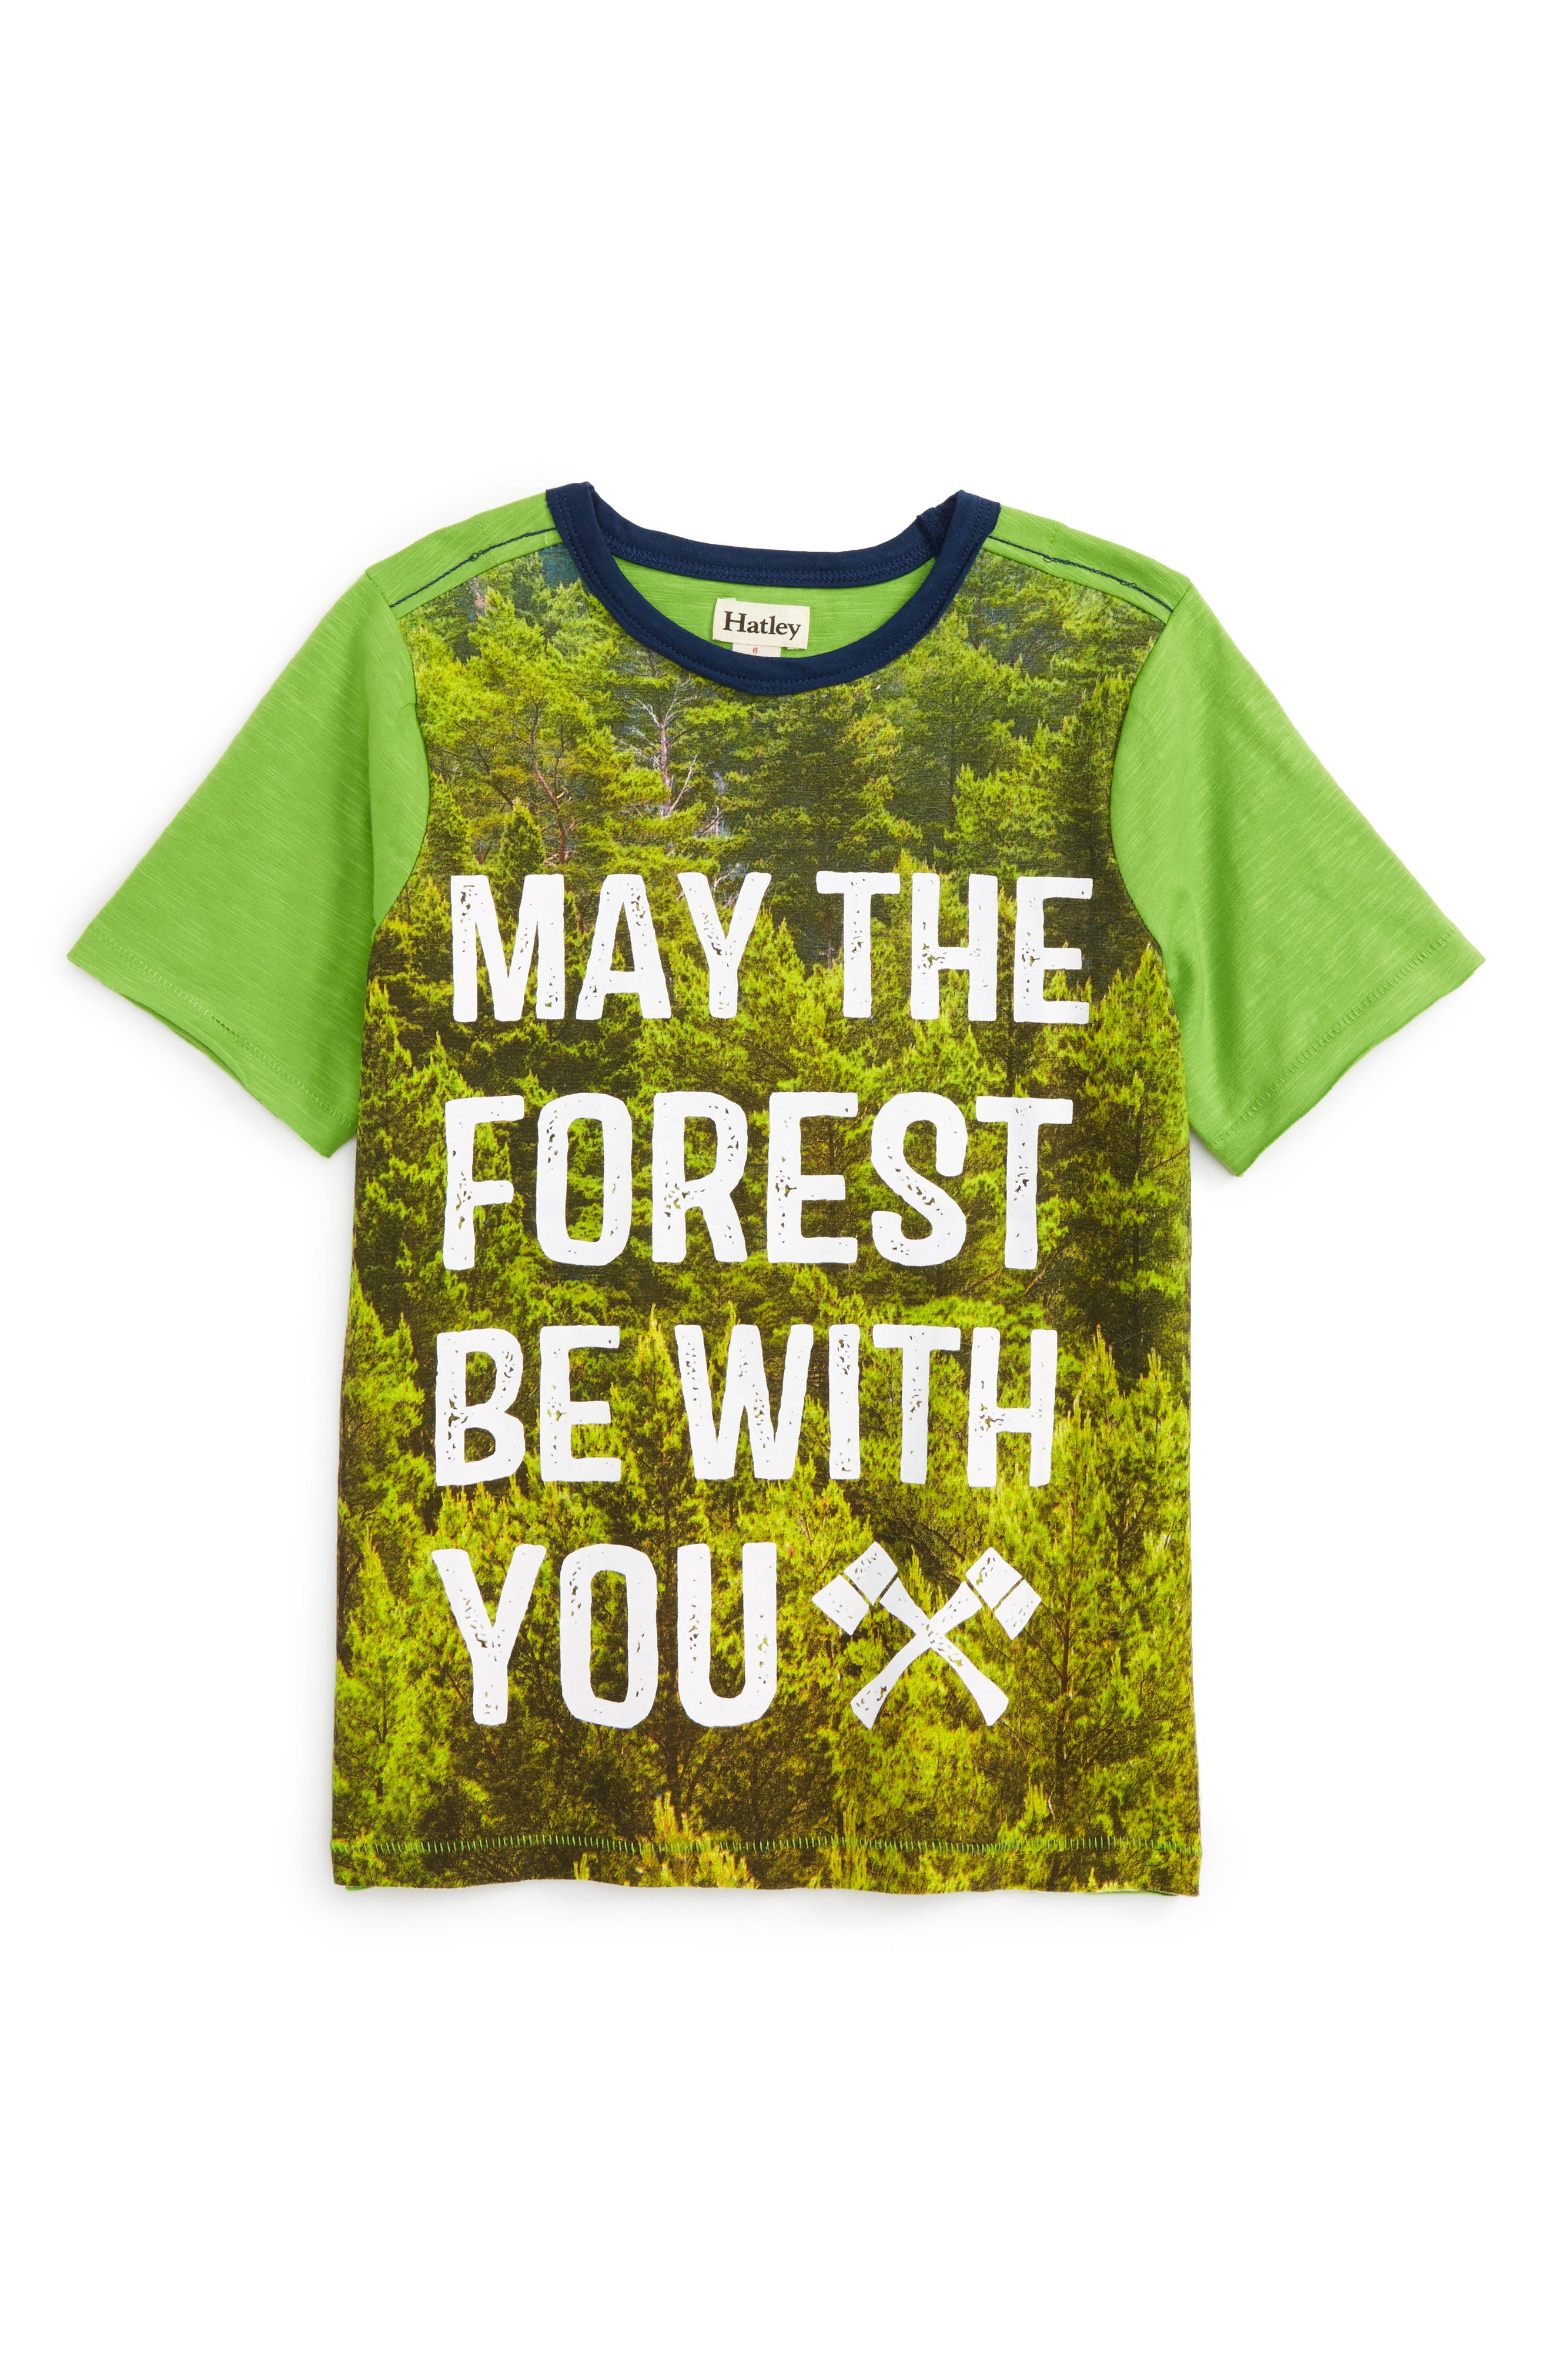 Main Image - Hatley May the Forest Be With You T-Shirt (Toddler Boys, Little Boys & Big Boys)